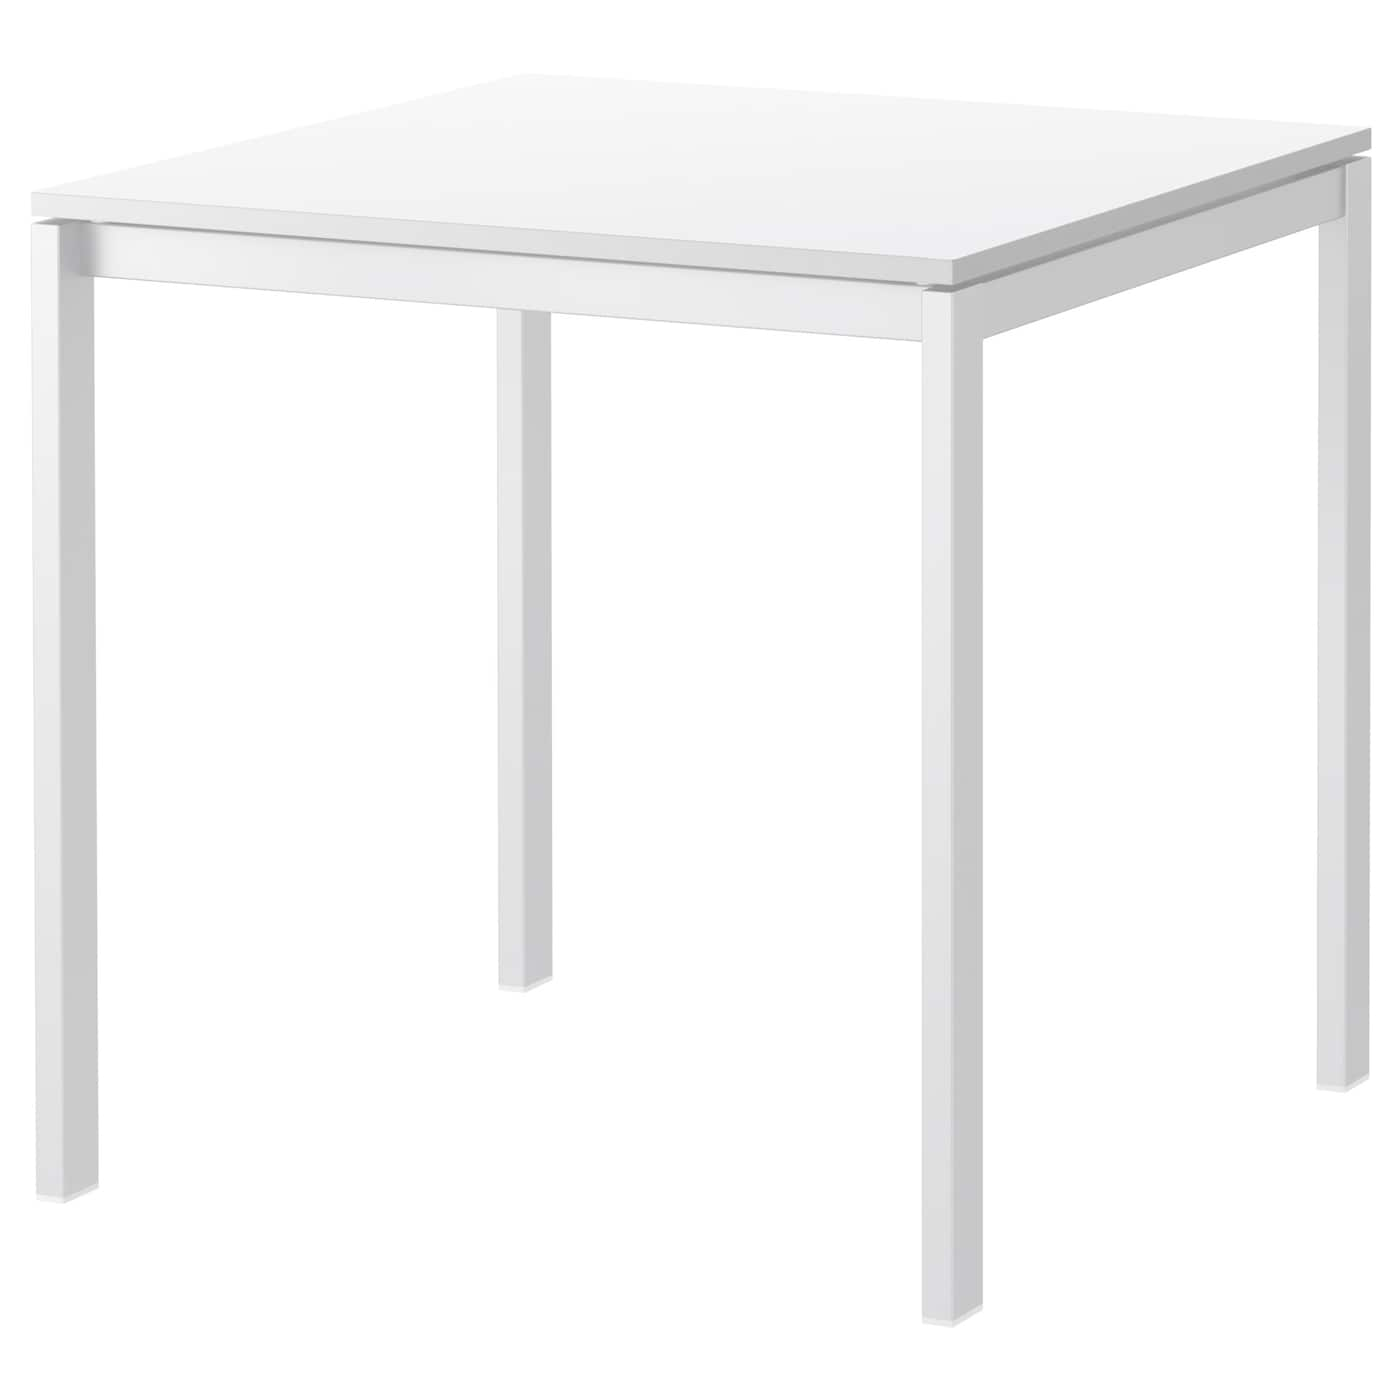 IKEA MELLTORP table The table is available in 2 sizes, seating 2-6 people.